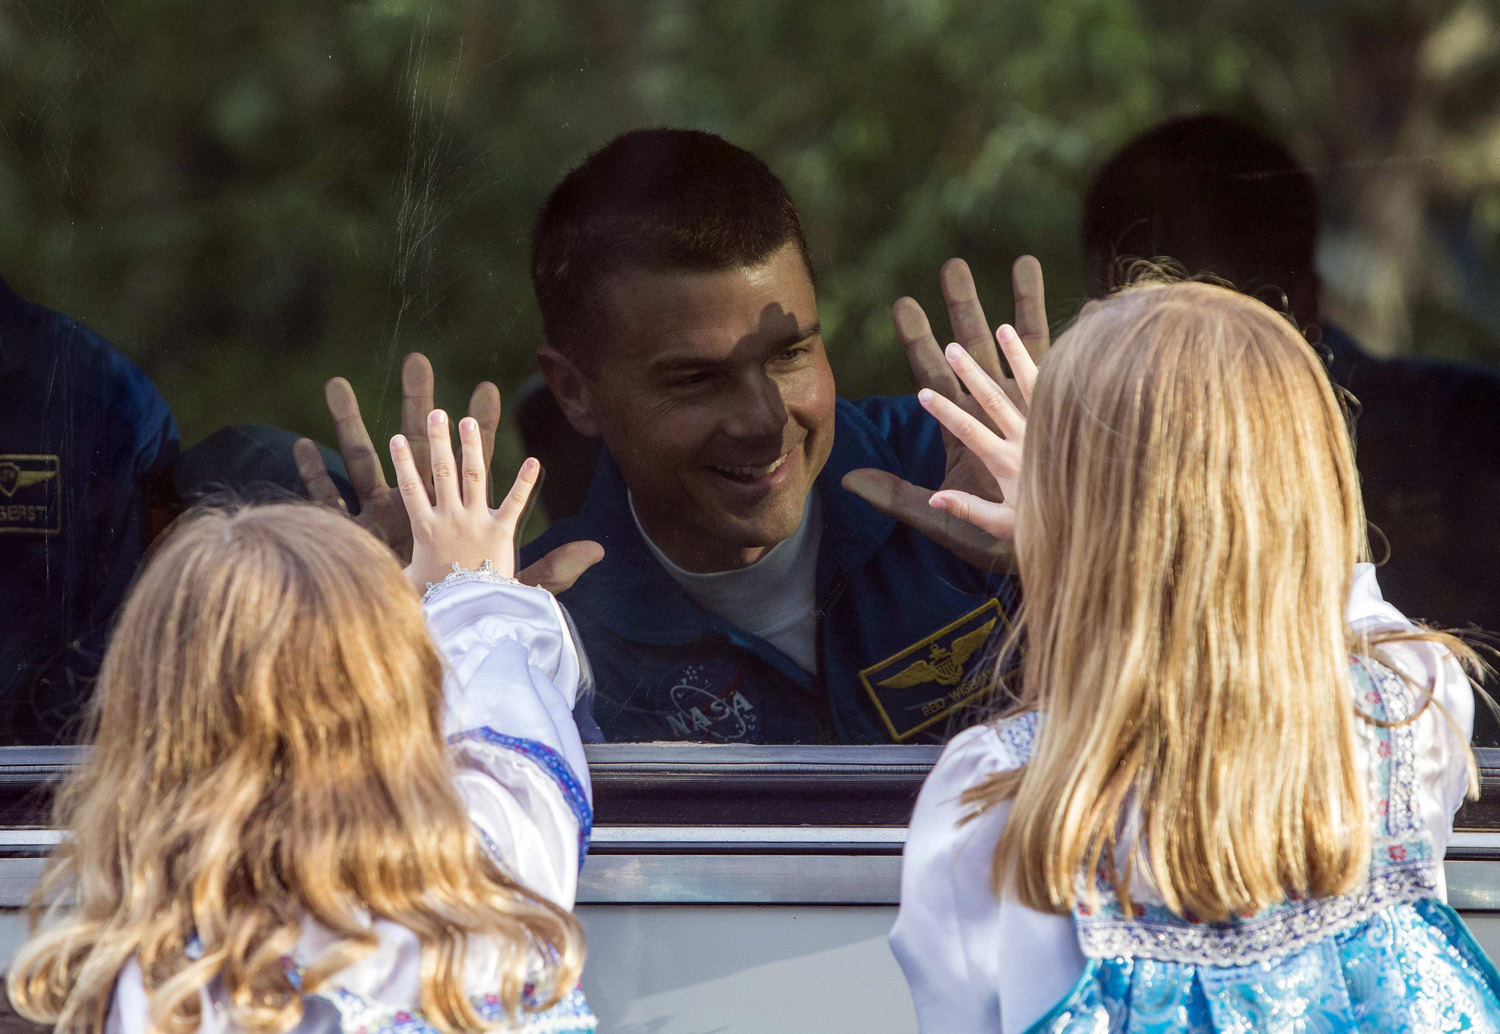 Reid Wiseman of the U.S., a member of the International Space Station crew, waves to his daughters from a bus before departure for a final pre-launch preparation at the Baikonur cosmodrome on May 28, 2014.